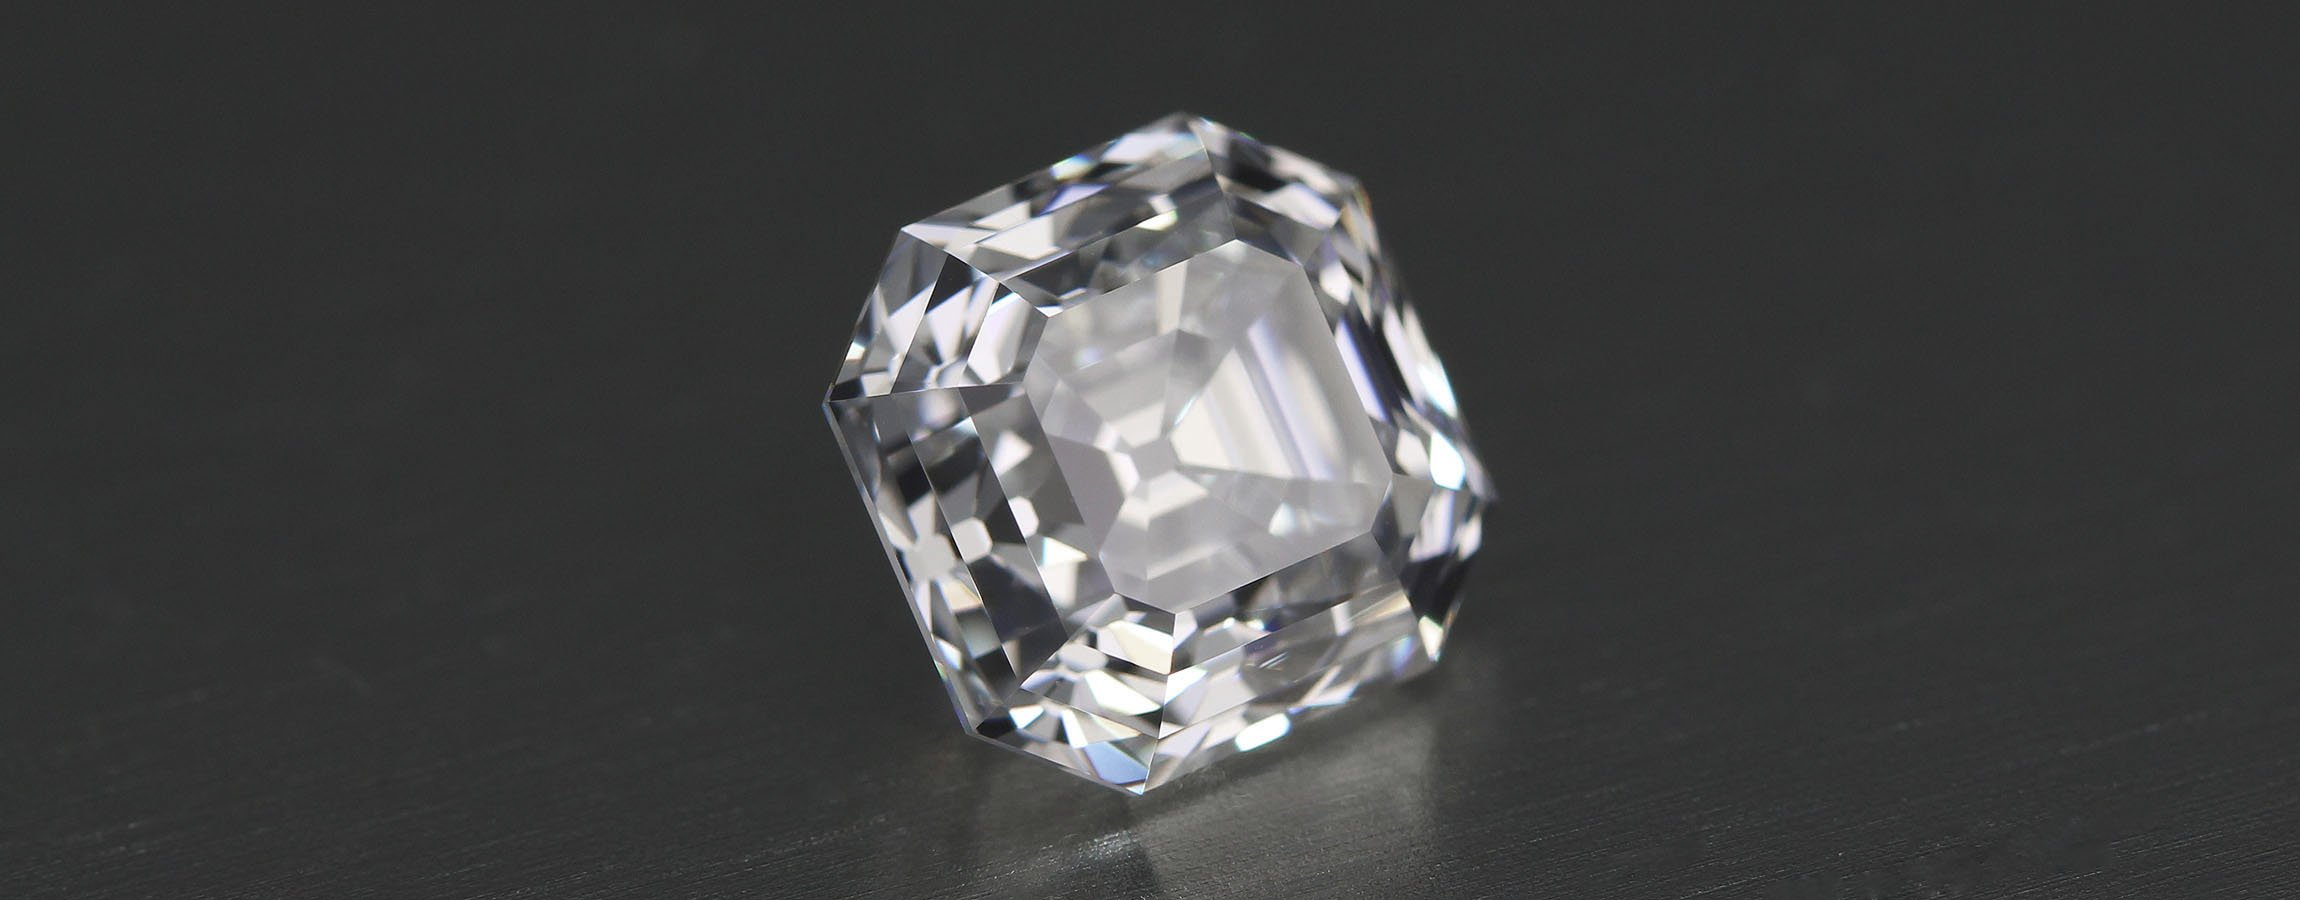 wider thinner it would about diamond slightly solitaire tall than oval or round just this but img topic asher my asscher as the be